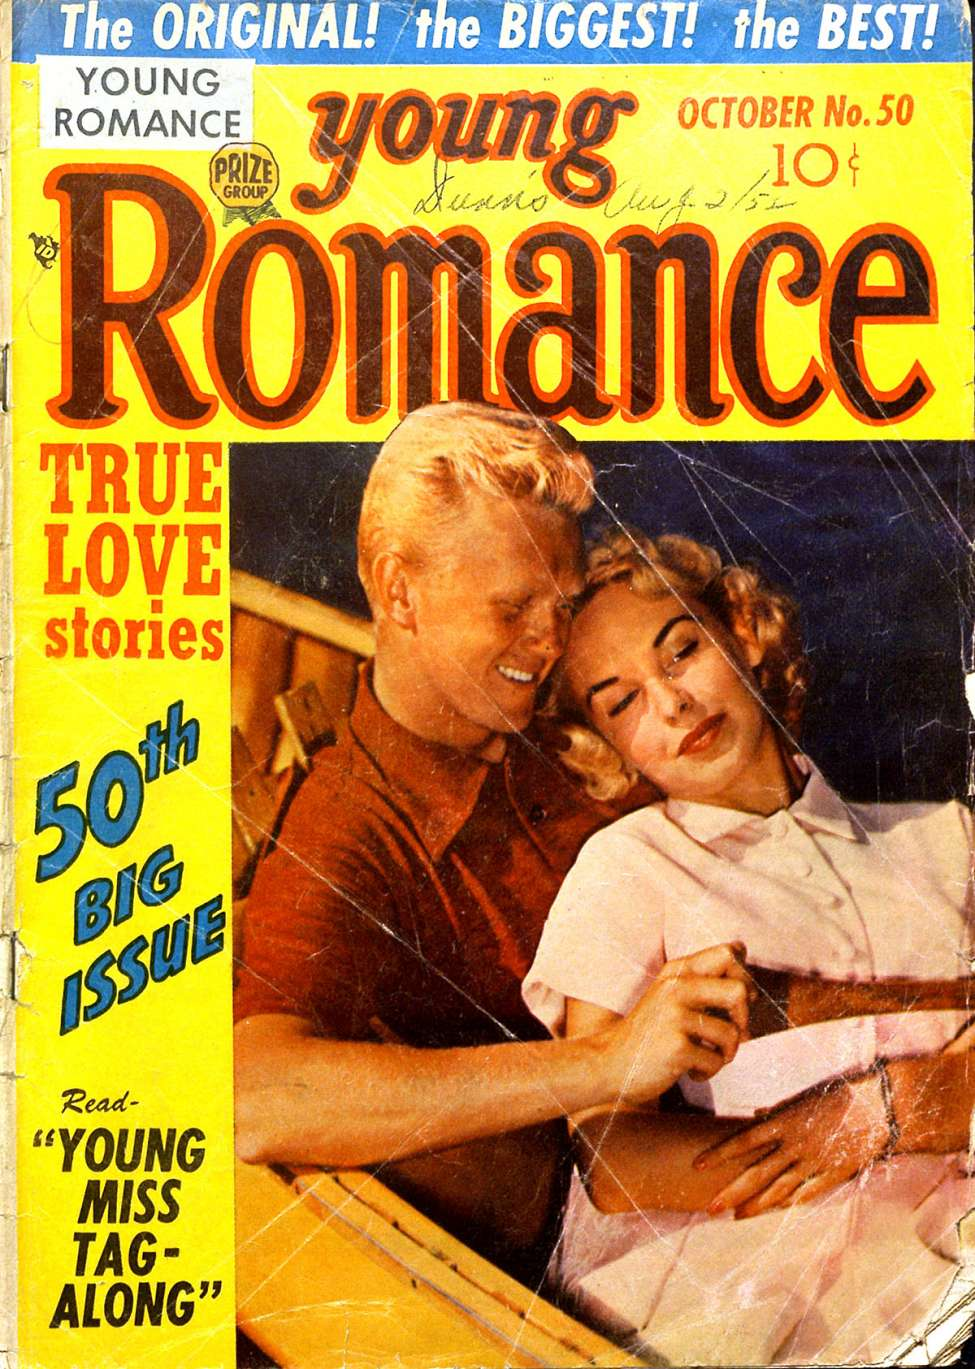 Comic Book Cover For Young Romance v6 2 (50)